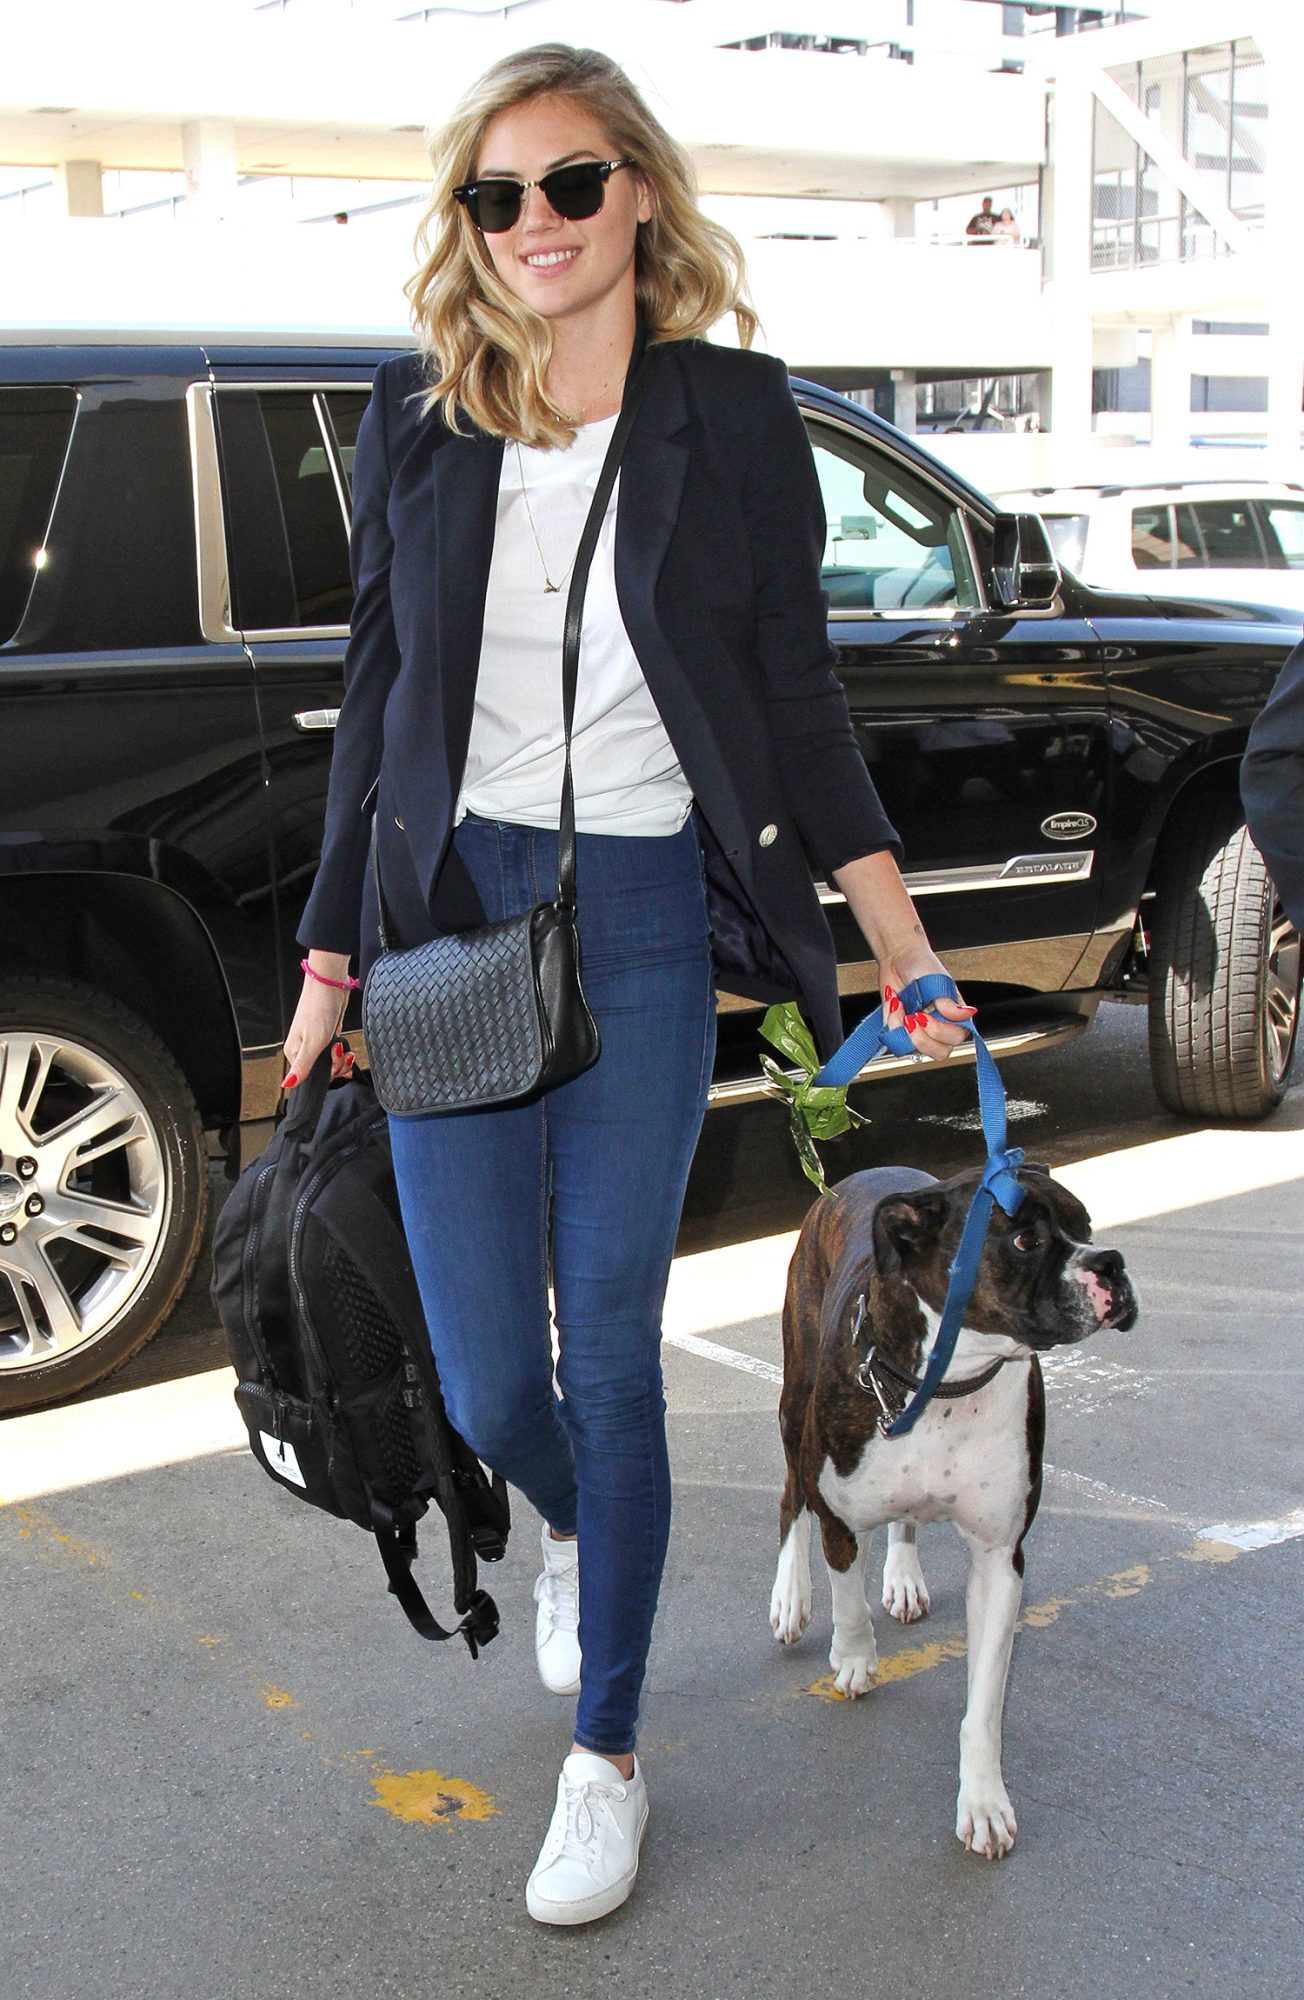 Kate Upton catches a flight out of Los Angeles with her dog Harley.  The supermodel was seen flying out of LAX.